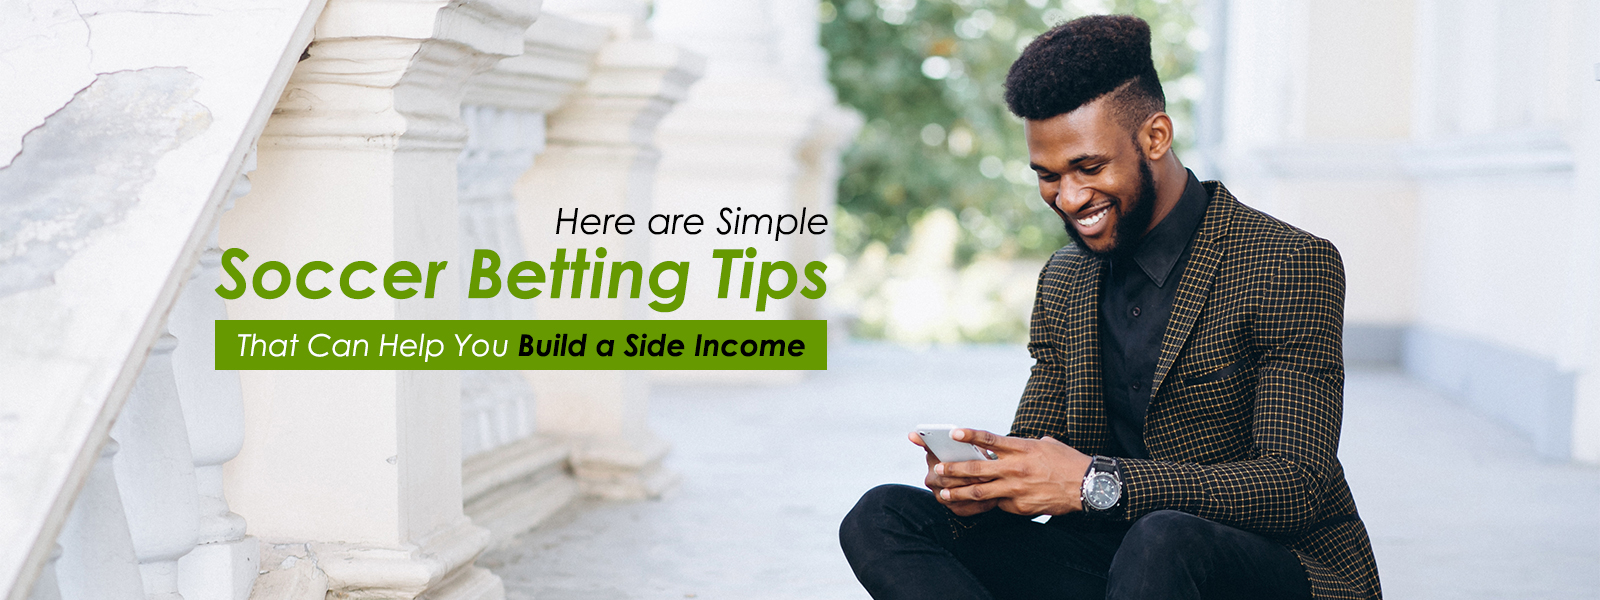 Here are Simple Soccer Betting Tips That Can Help You Build a Side Income